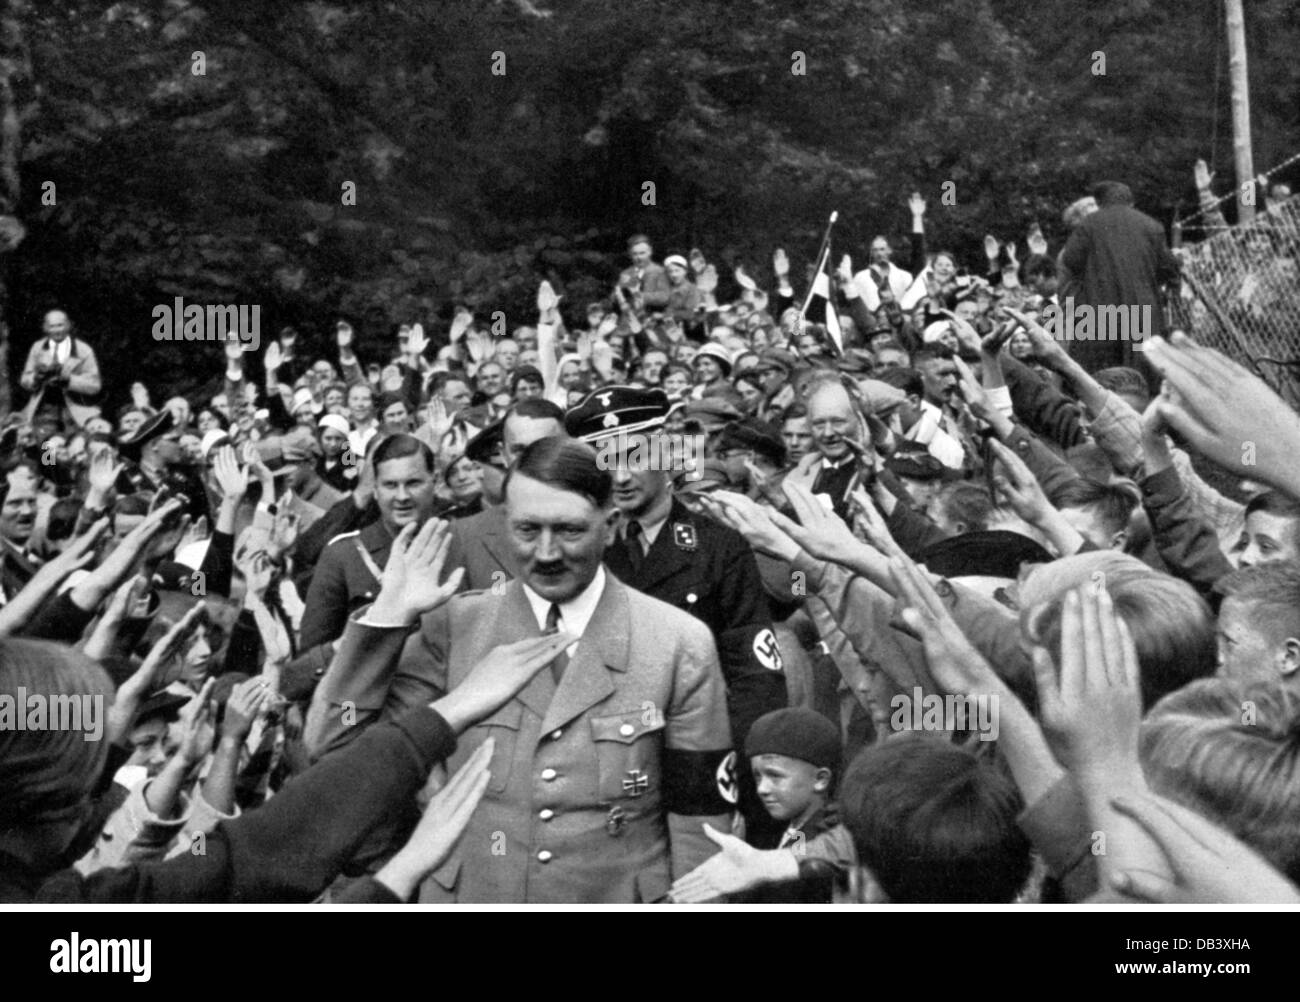 hitler speech crowd